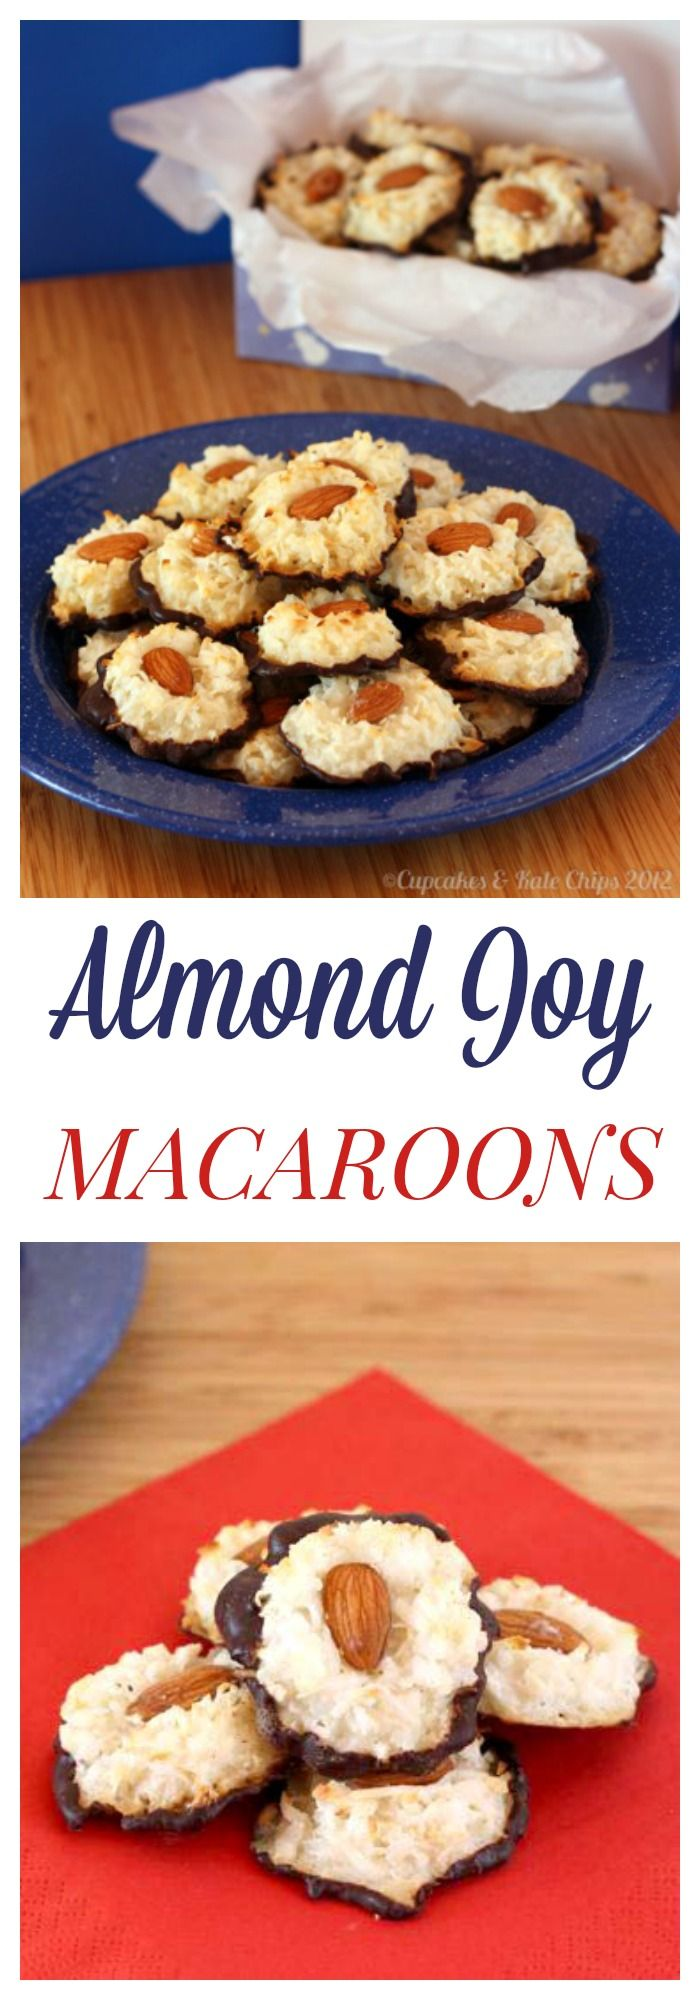 Almond Joy Macaroons